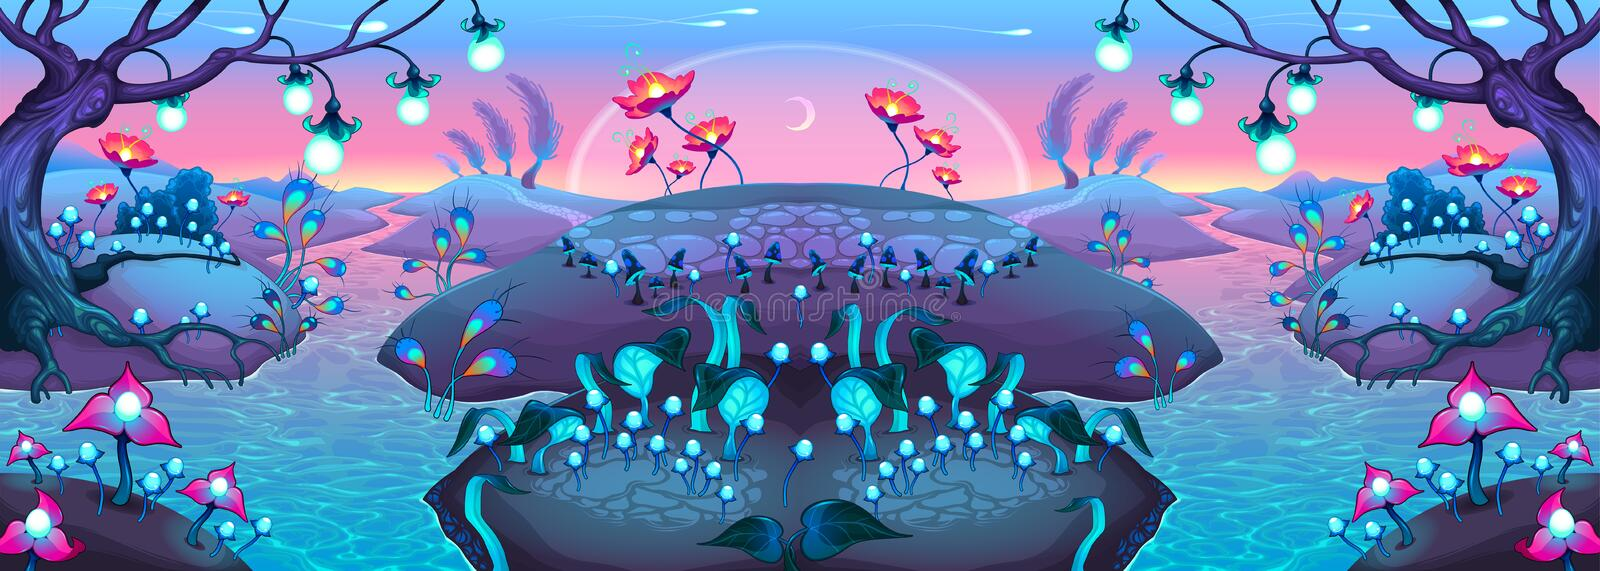 Fantasy nocturnal landscape. Cartoon vector illustration stock illustration